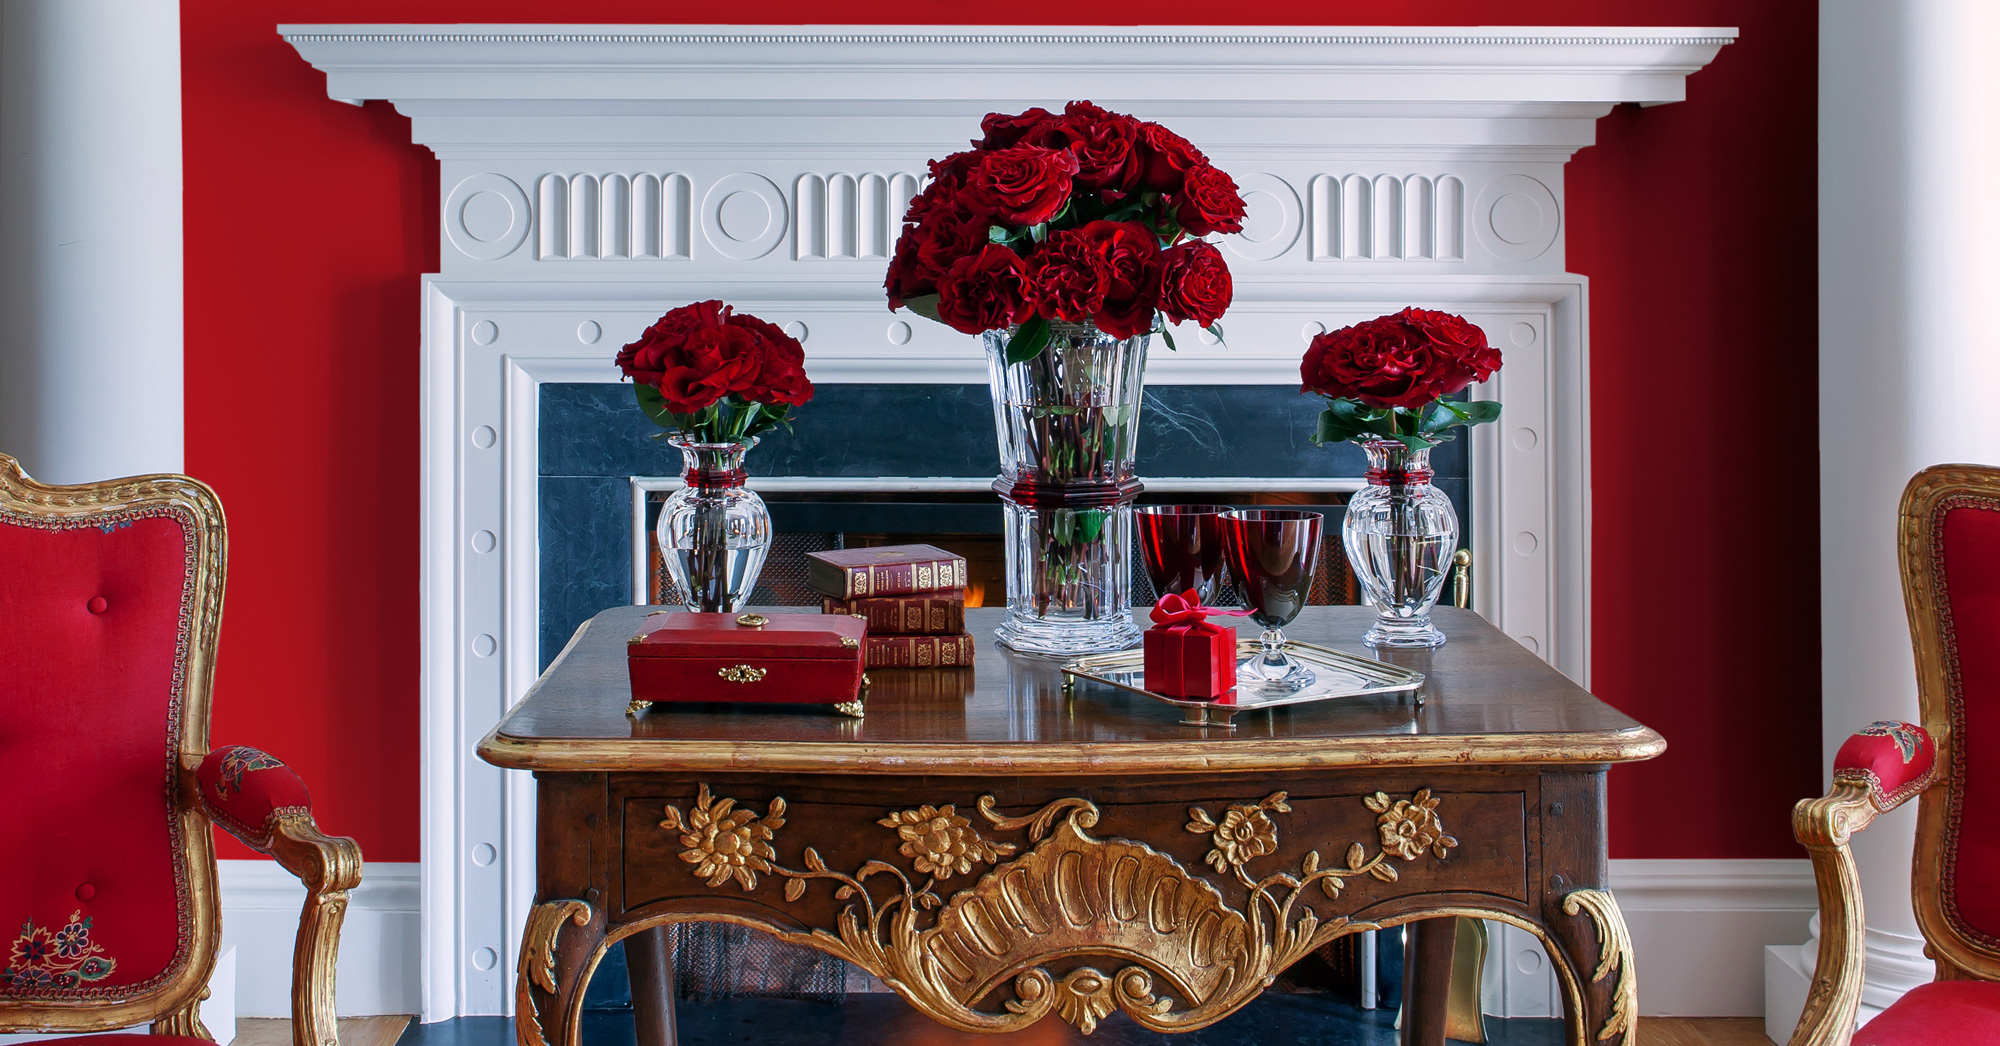 decorationi baccarat